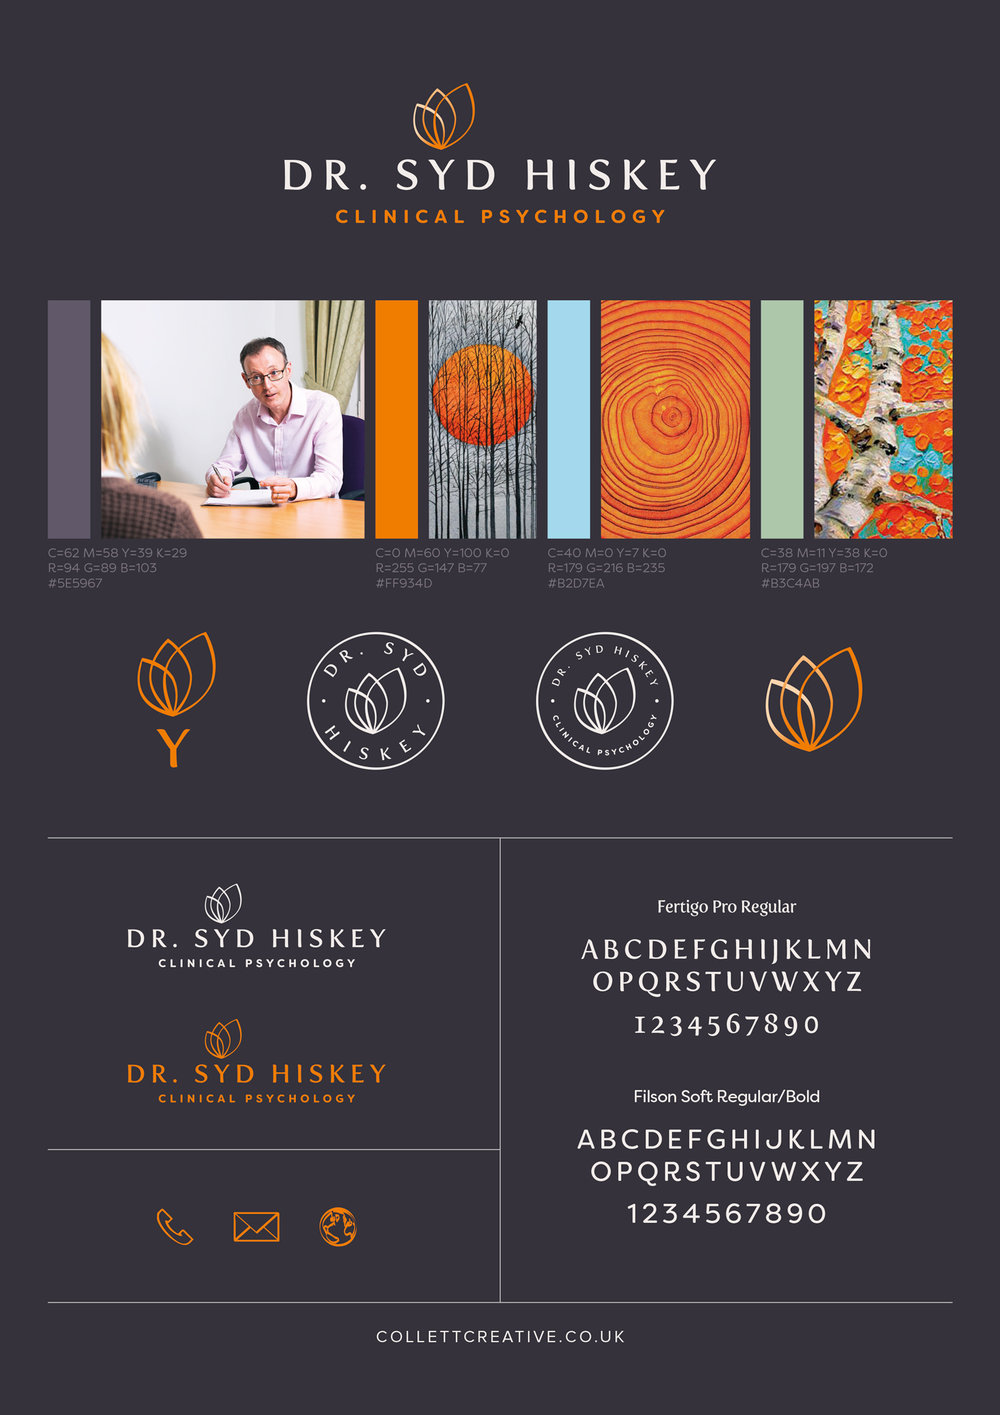 Brand Board for Dr. Syd Hiskey (Negative)